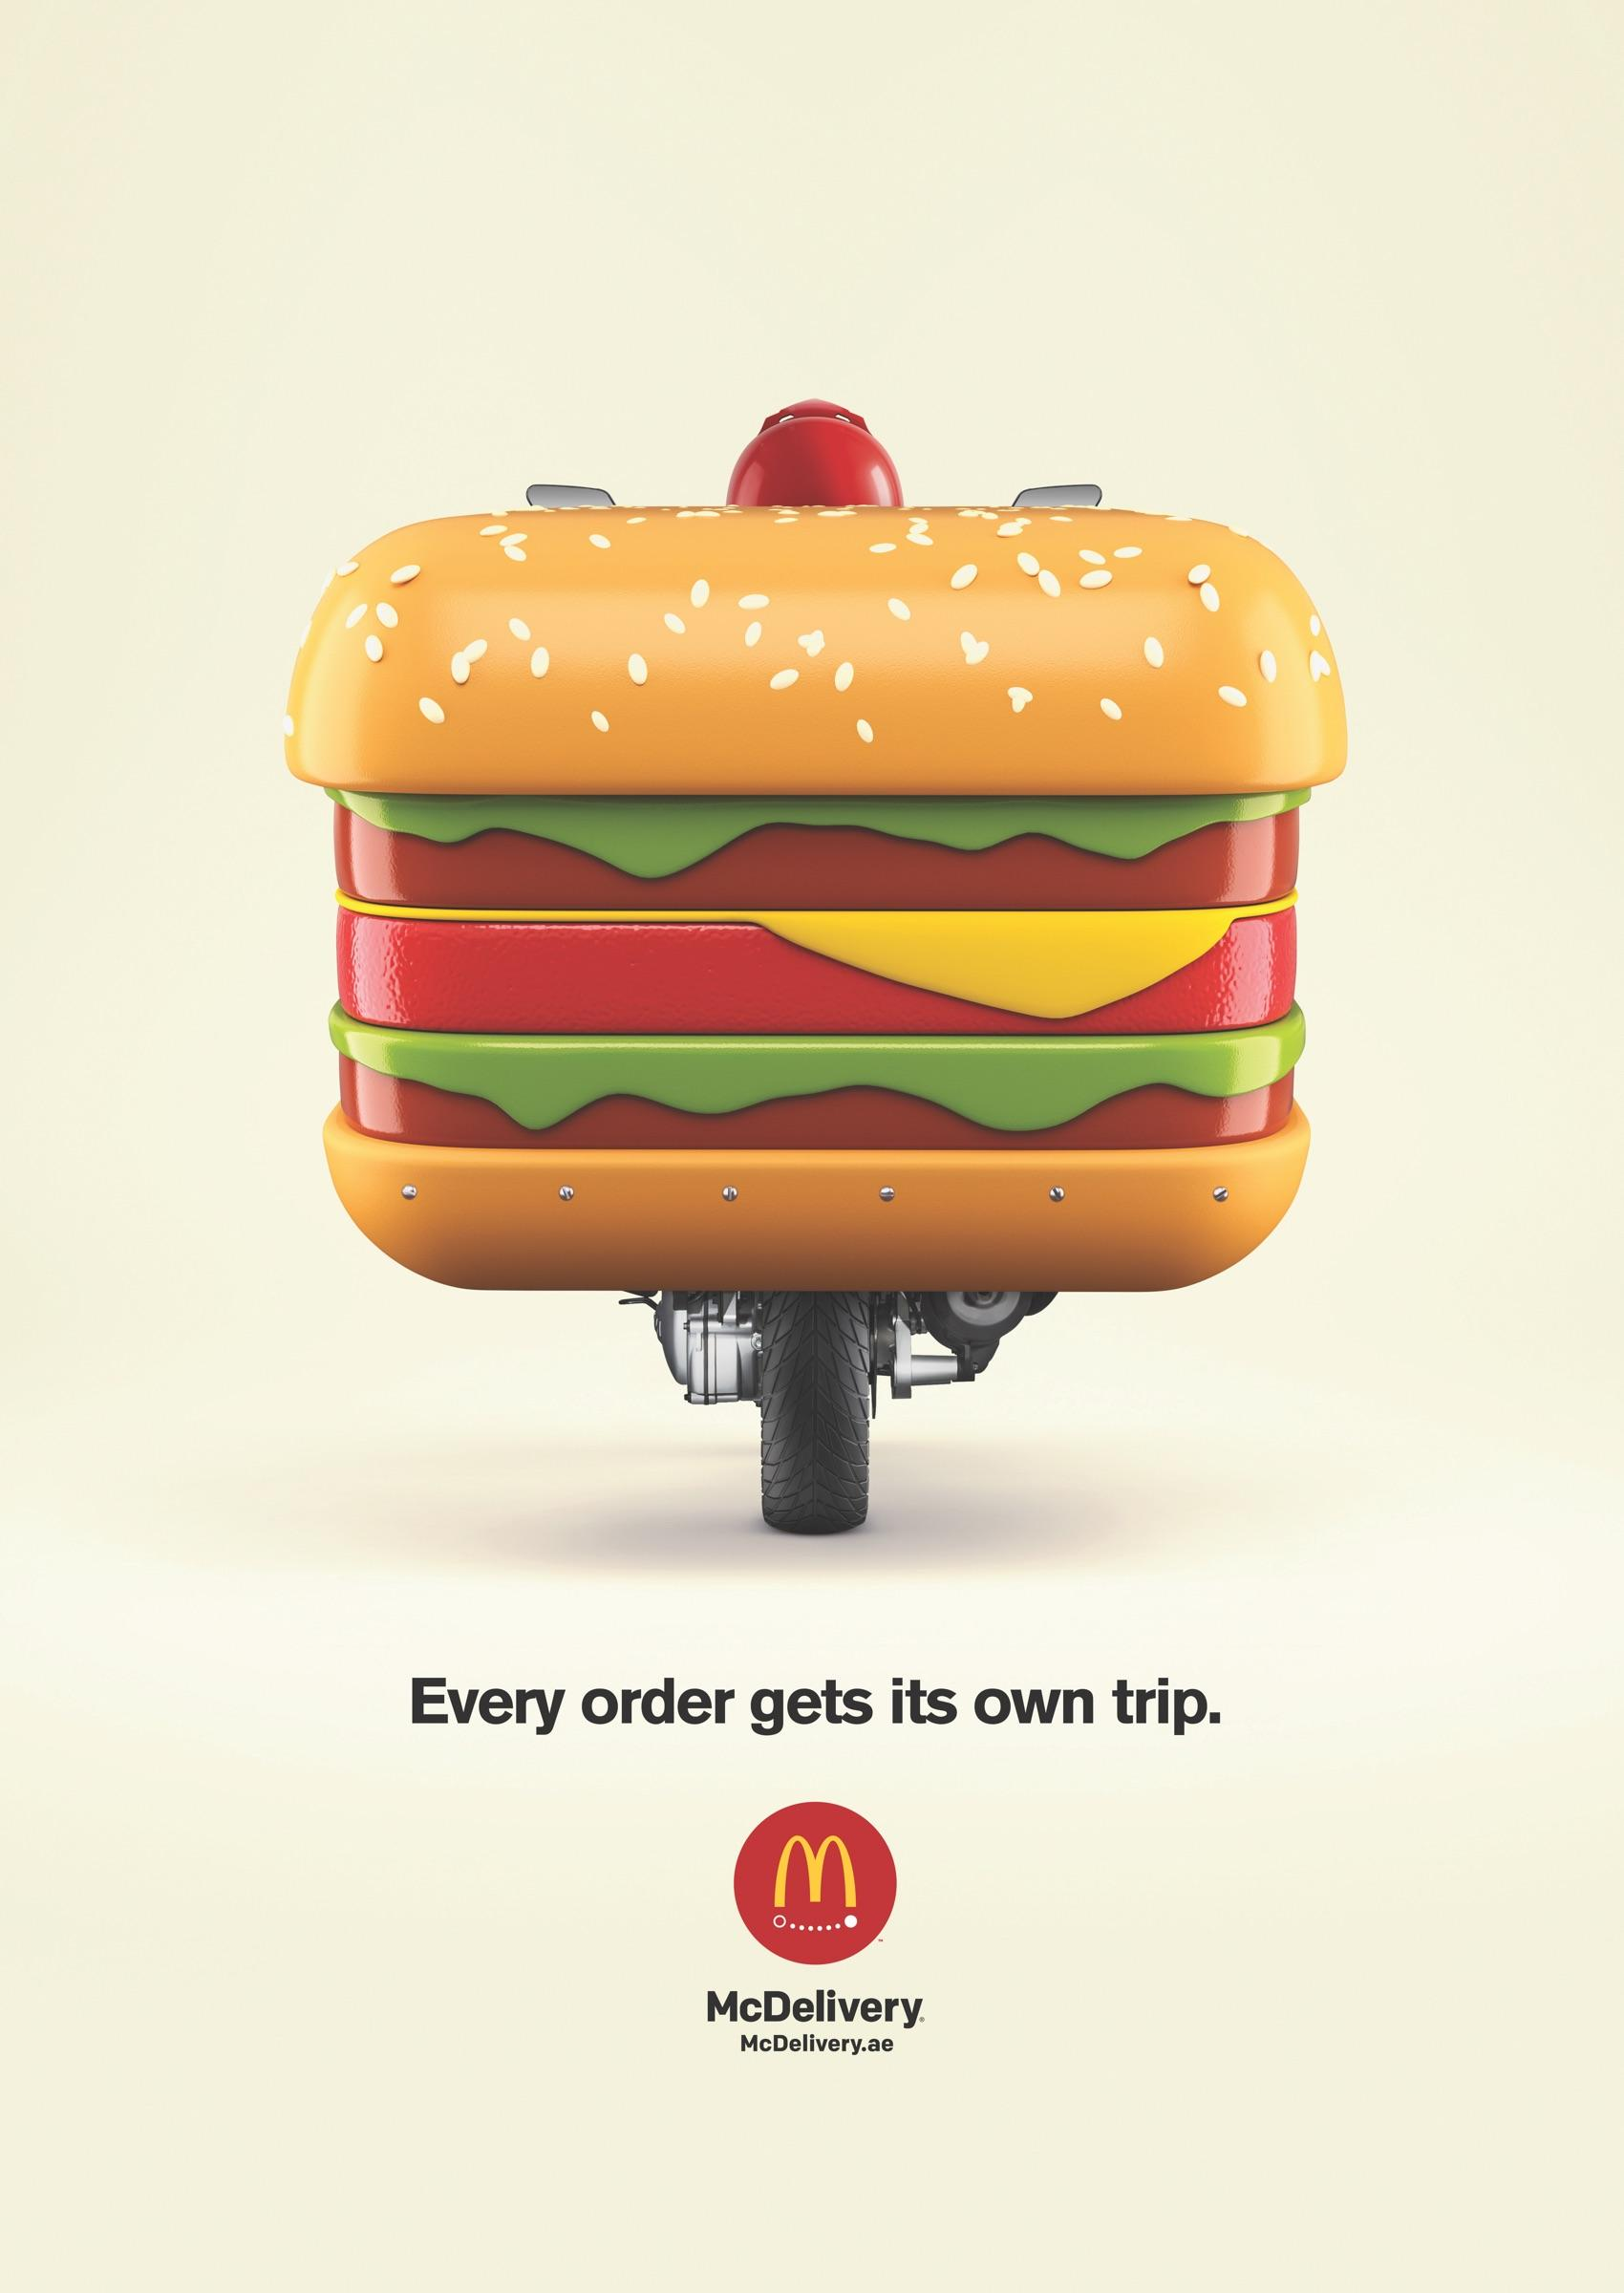 McDonald's Print Ad - Every Order Get It's Own Trip - Burger